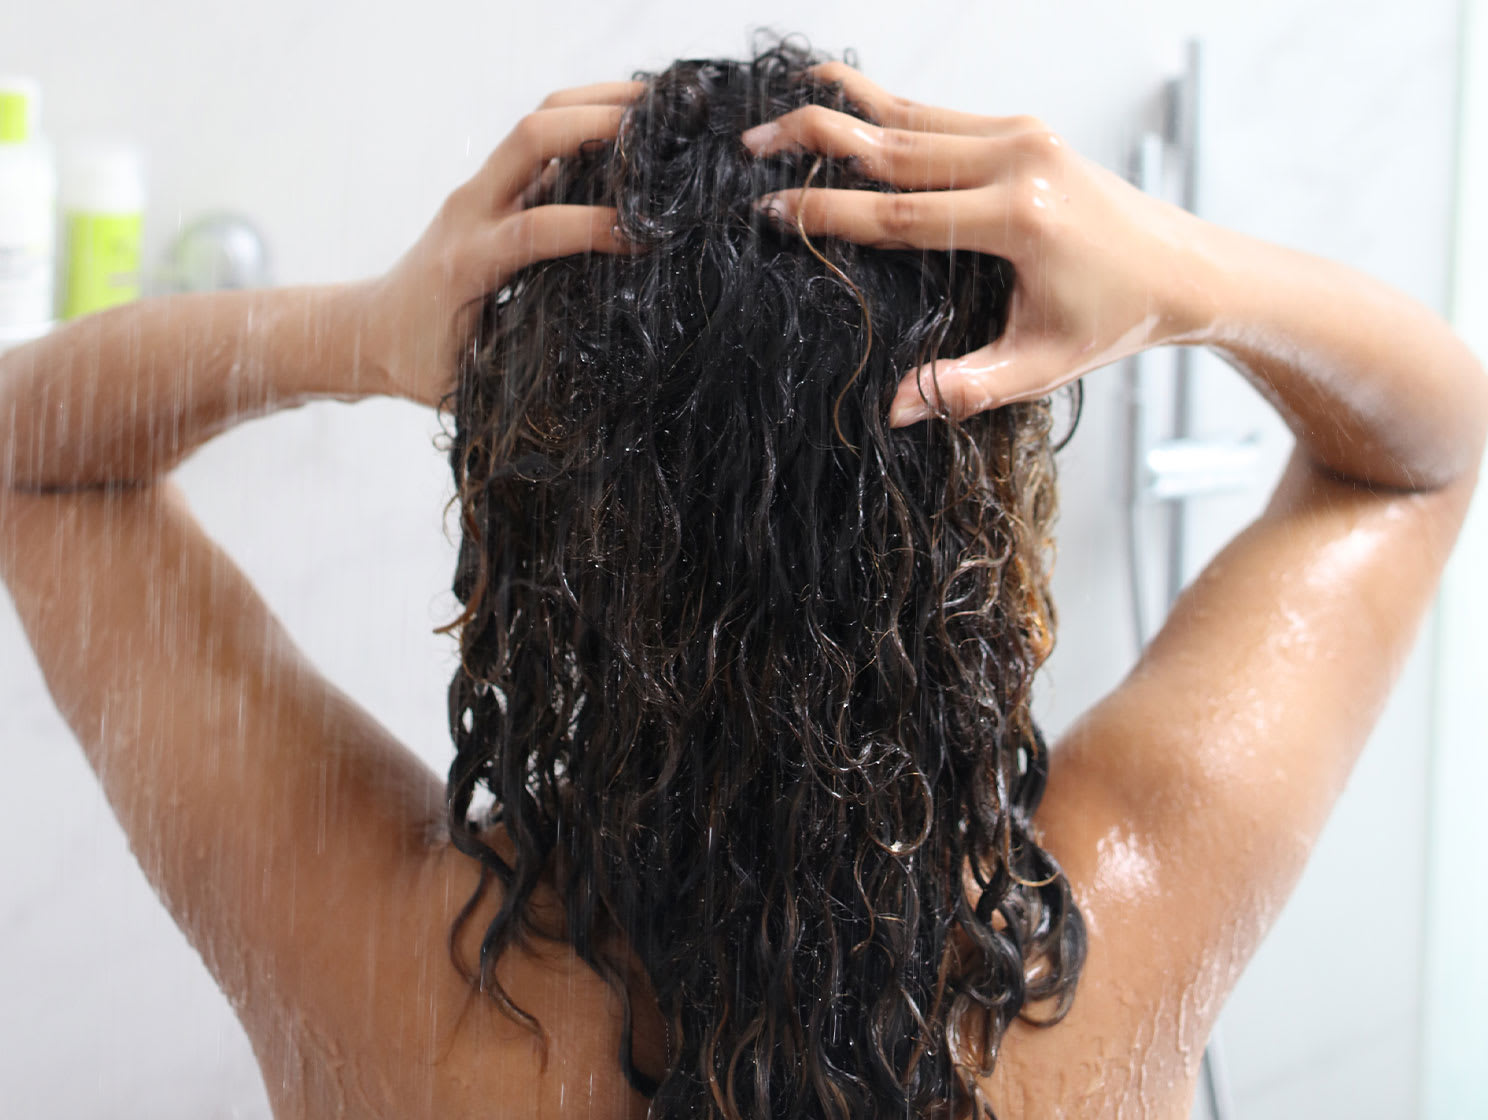 woman in shower washing dark curly hair